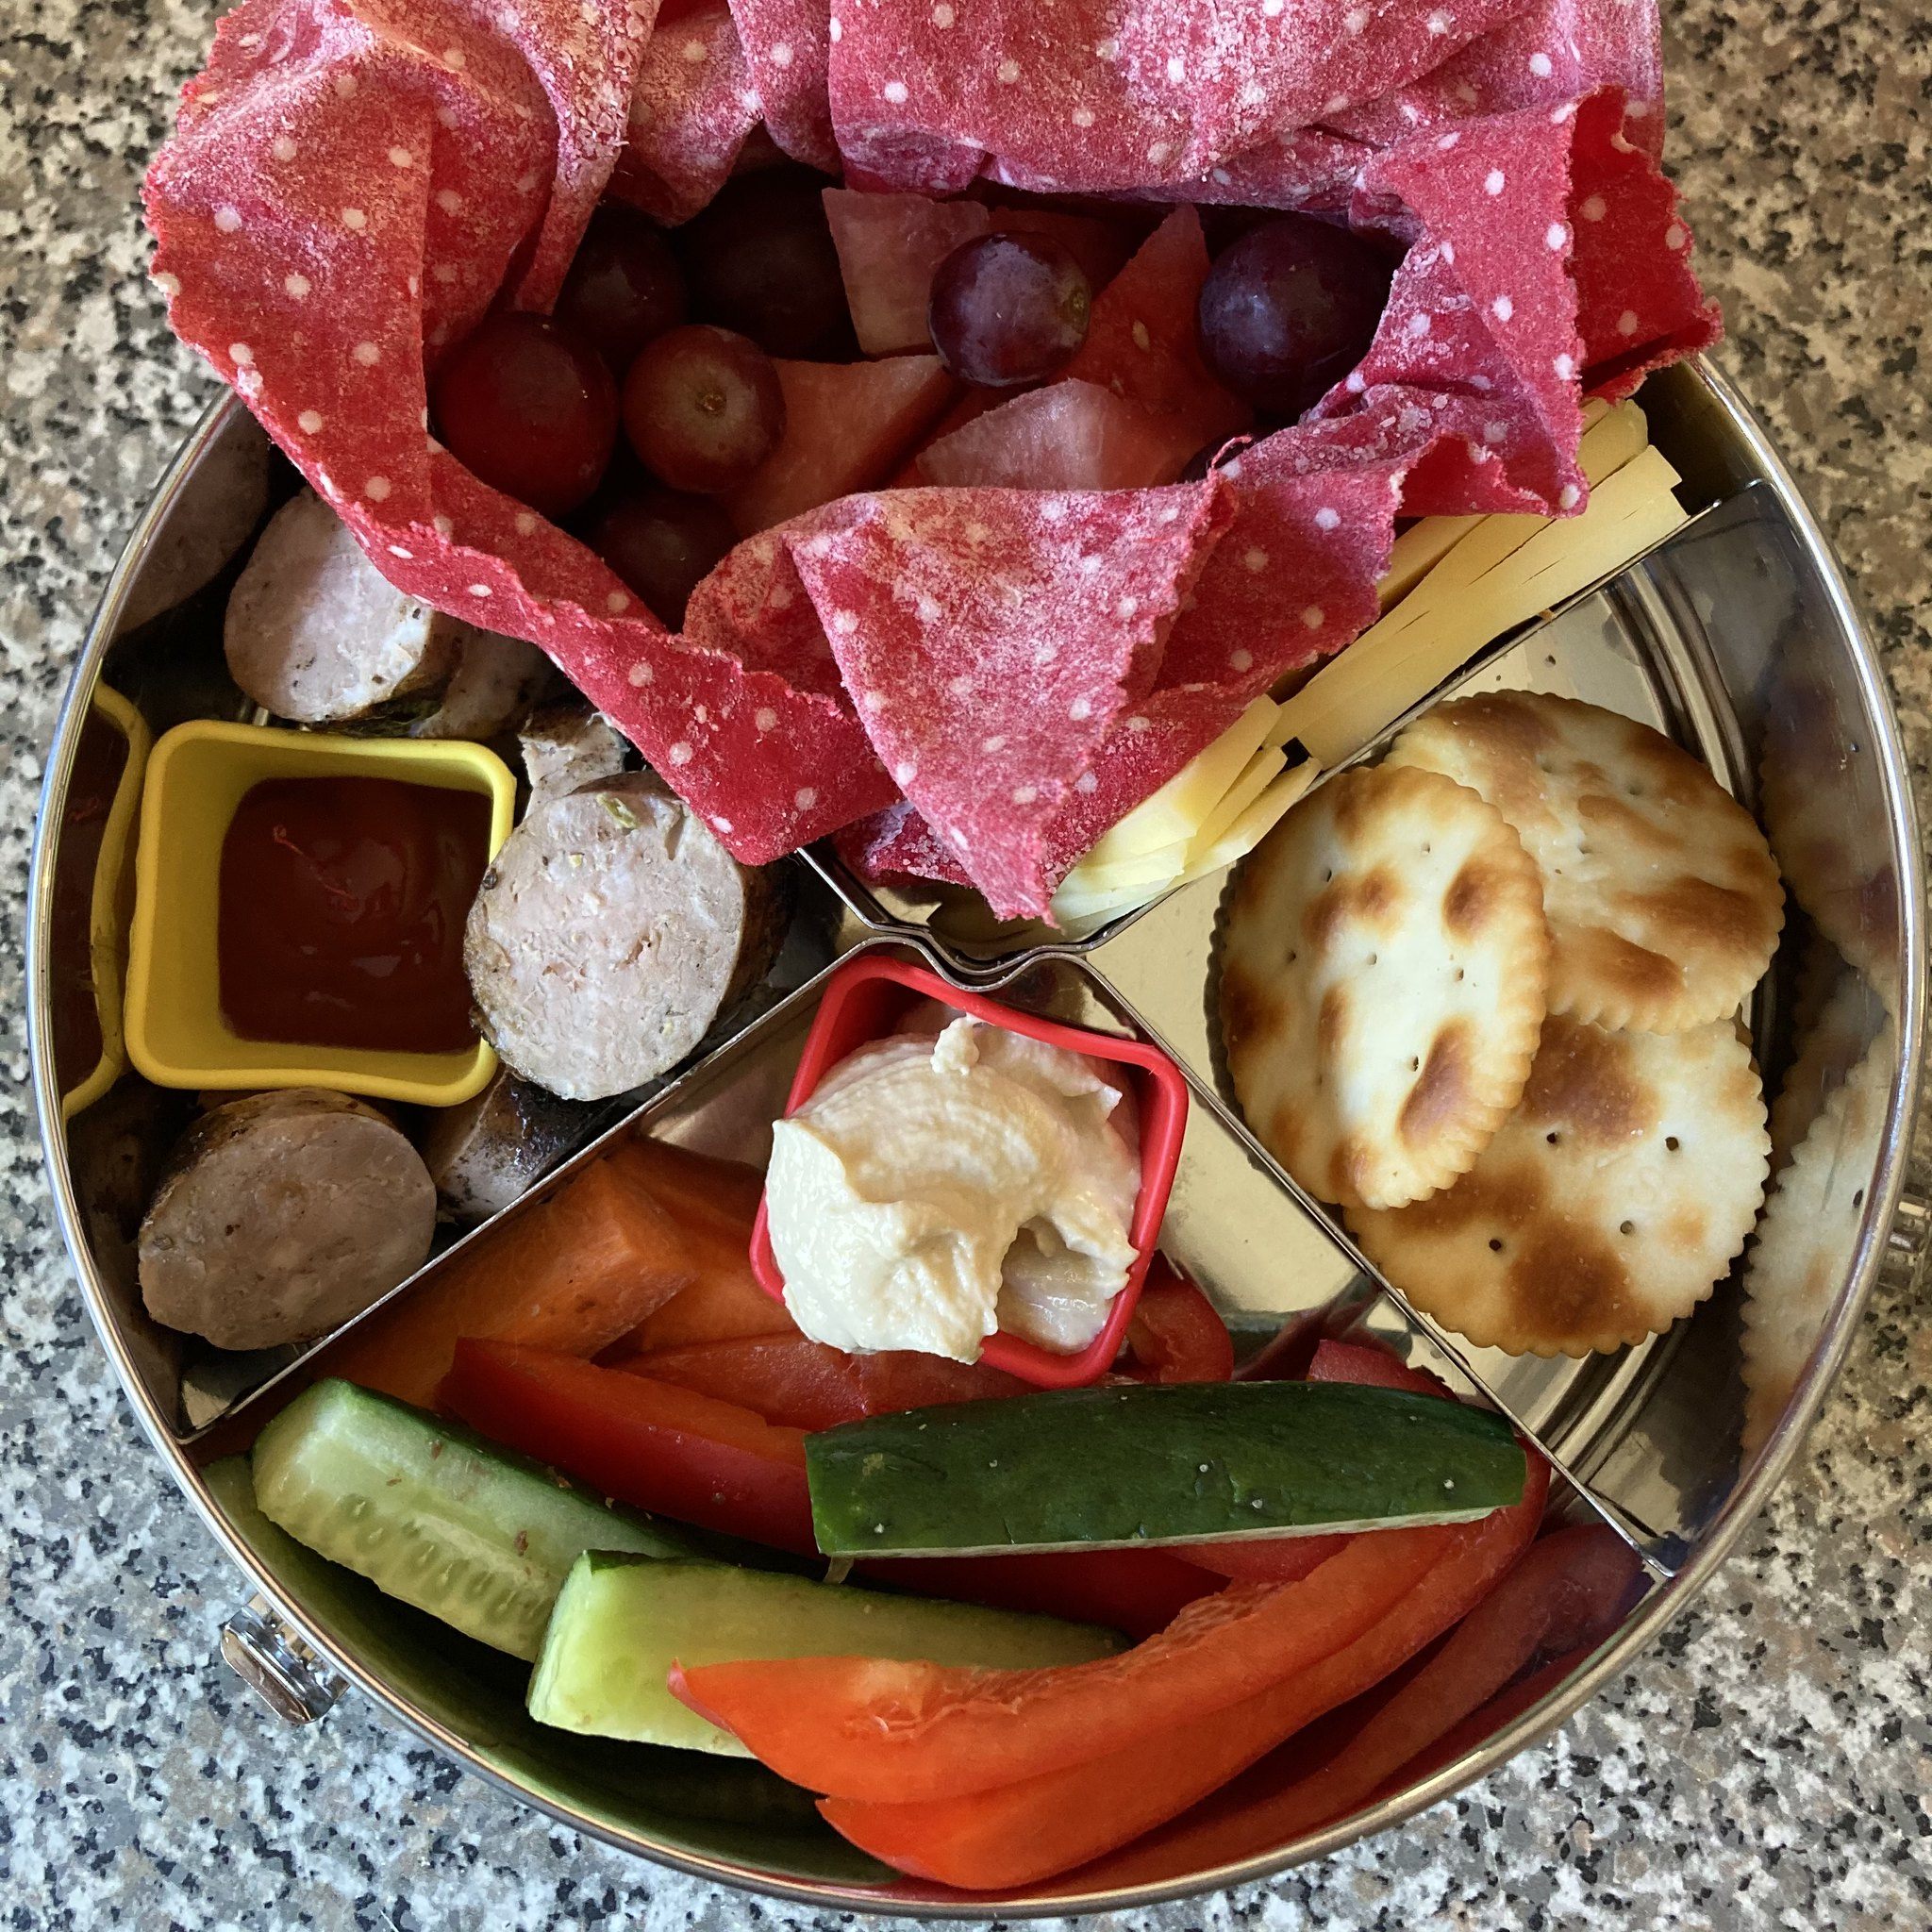 a round stainless steel lunchbox, packed with crackers and cheese, watermelon and red grapes wrapped in a red beeswax wrap, sticks of cucumber, capsicum, carrot and snowpeas with some hommus in a square red silicon container and a sliced up sausage with tomato sauce in a yellow square silicon container